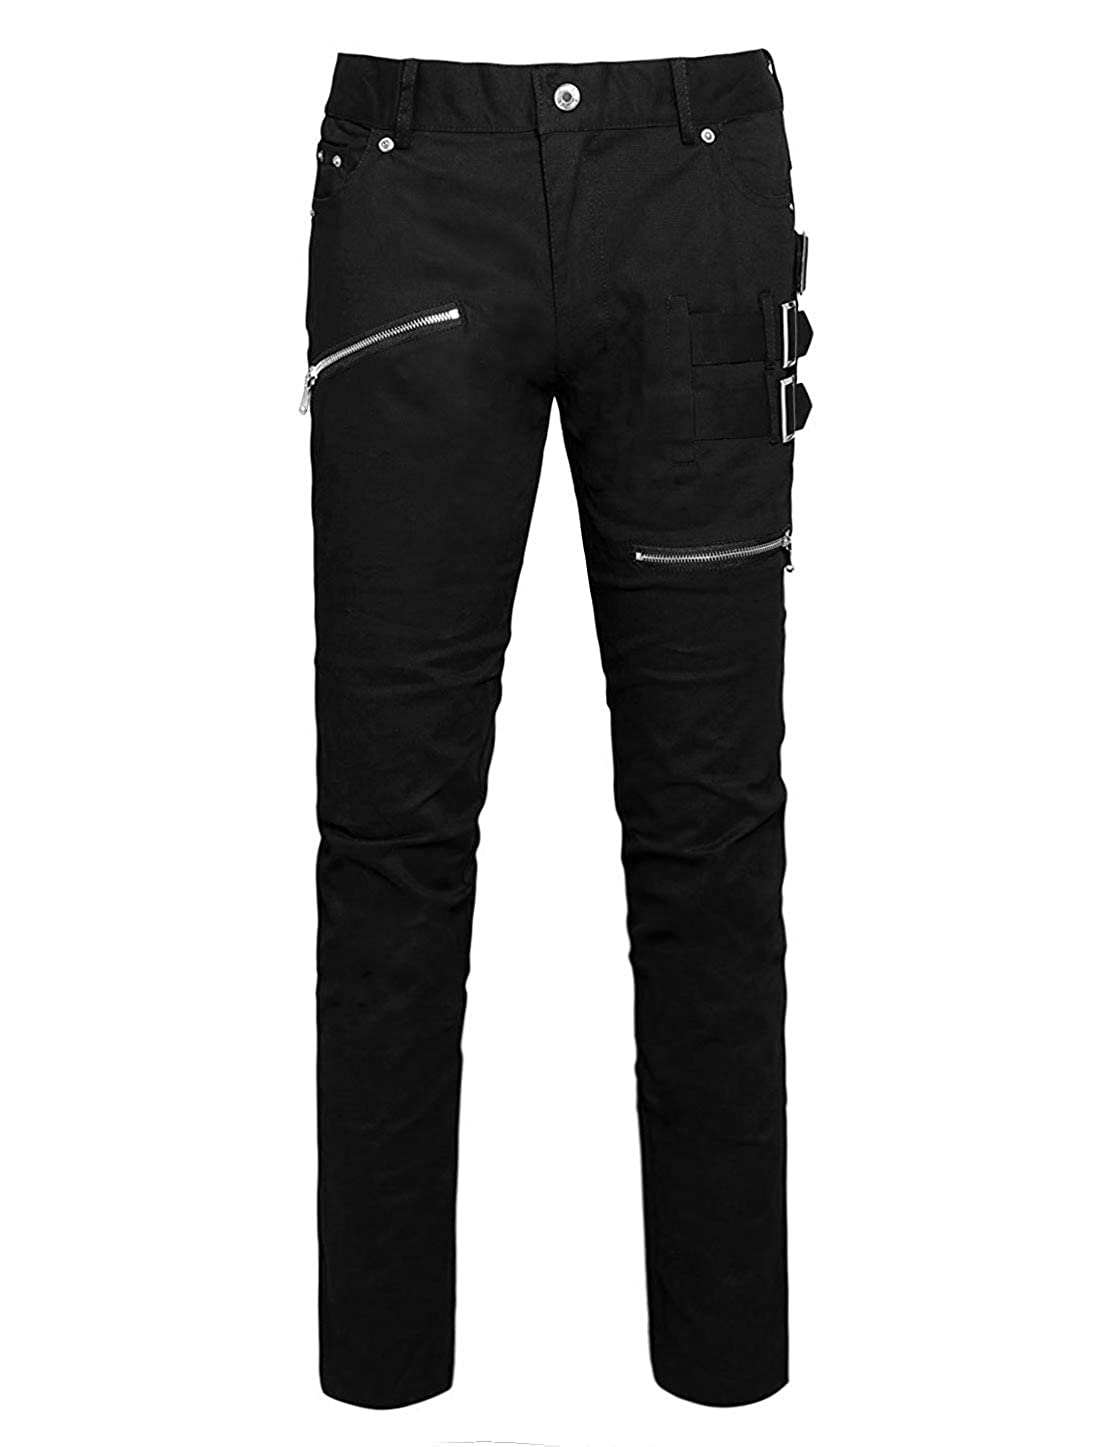 f26718b5be9 uxcell Men Casual Slim Fit Pockets Patch Buckle Zipper Gothic Punk Rock  Pants at Amazon Men s Clothing store